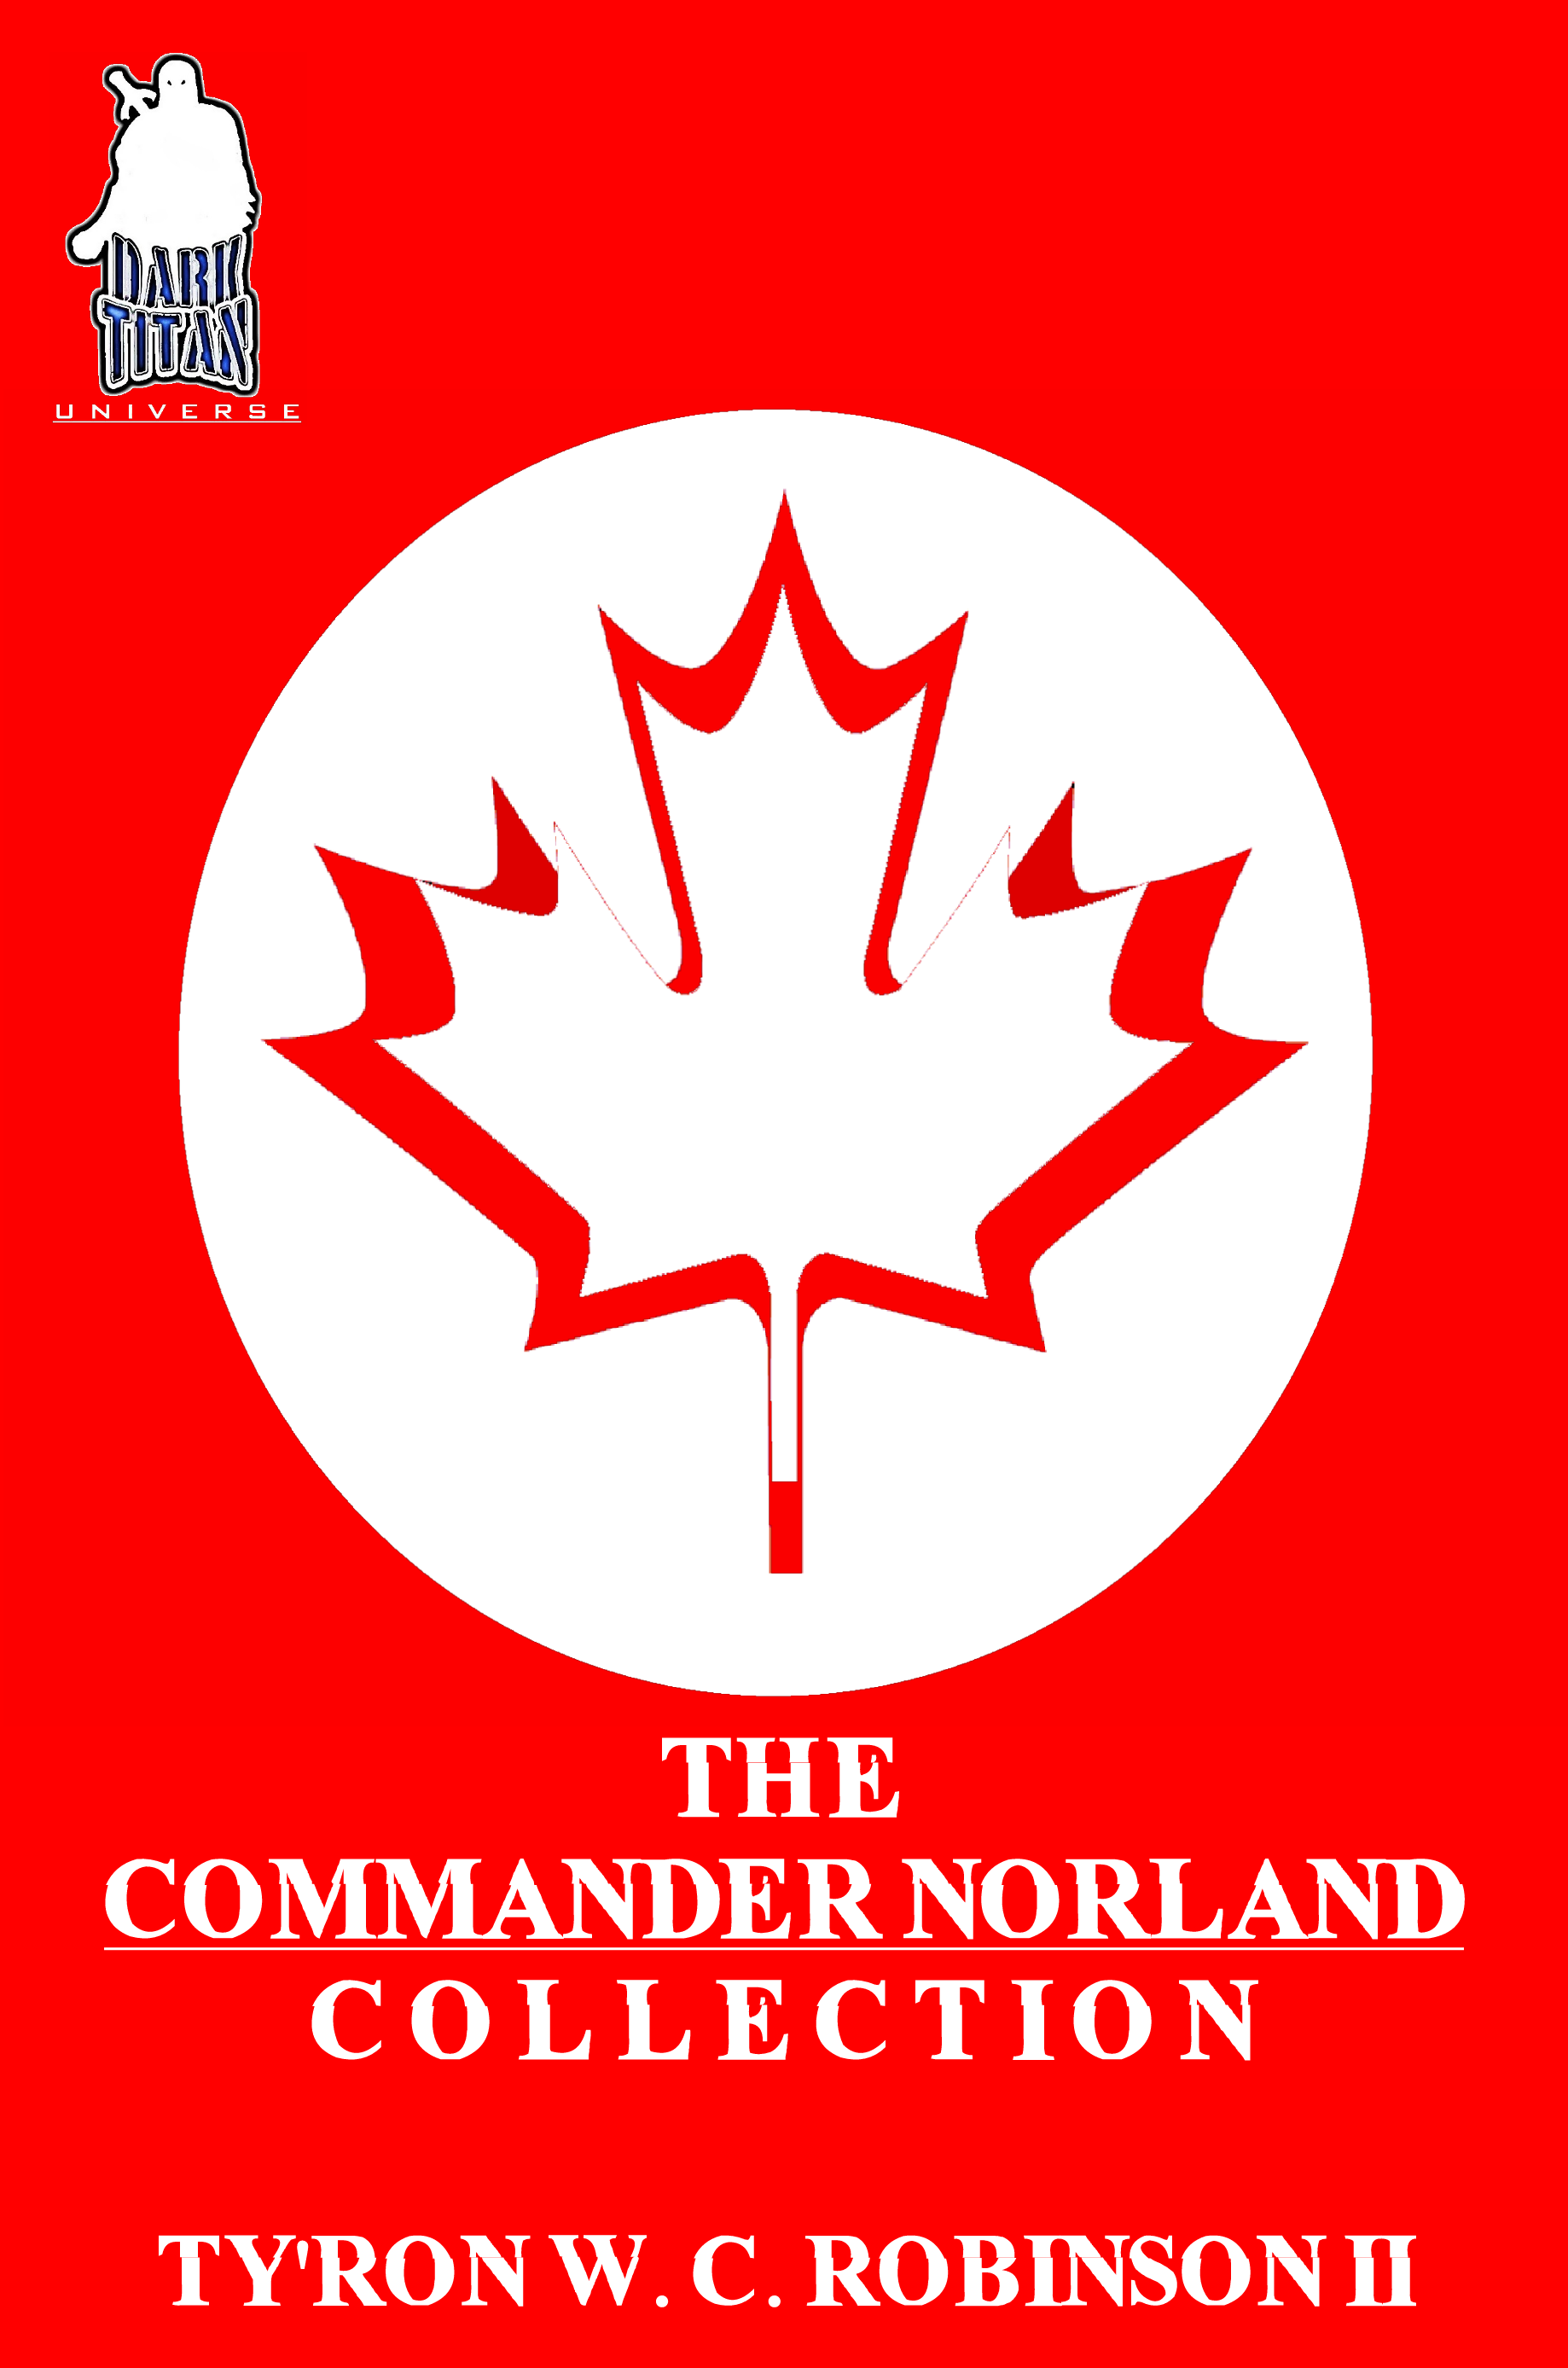 The Commander Norland Collection - Cover.png